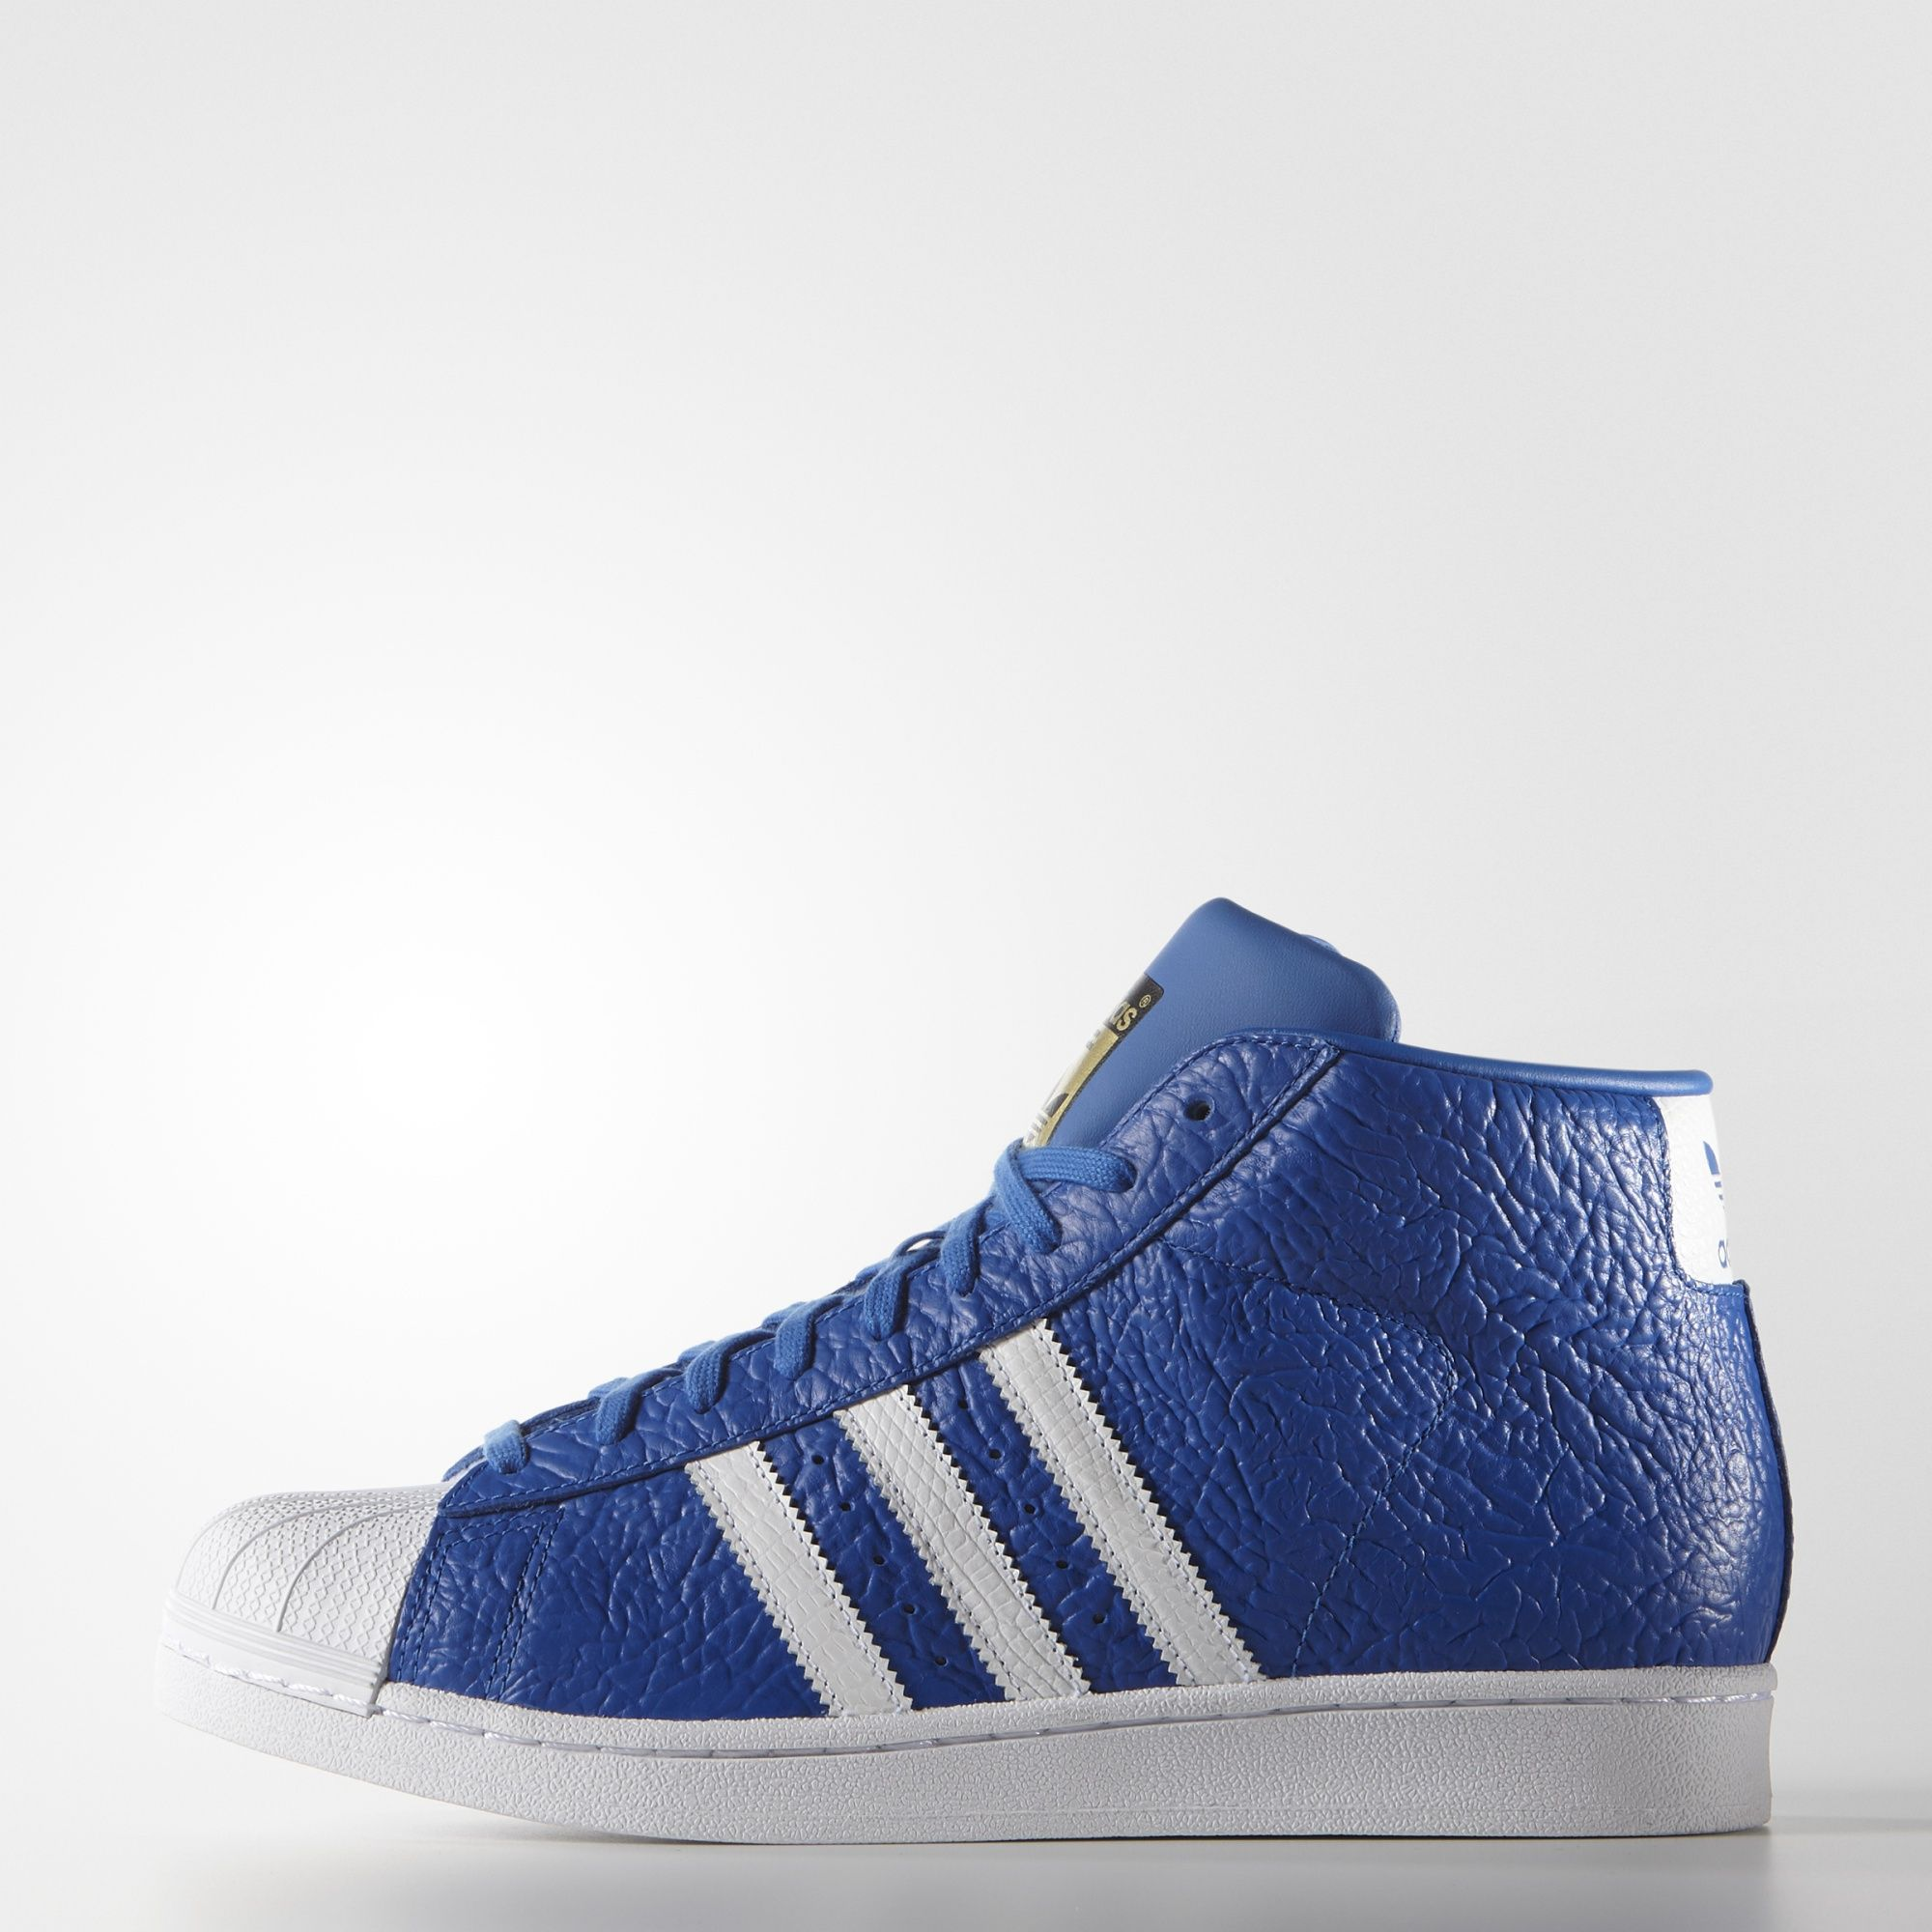 75fd4b56b735 The hi-top version of the adidas Superstar sneaker